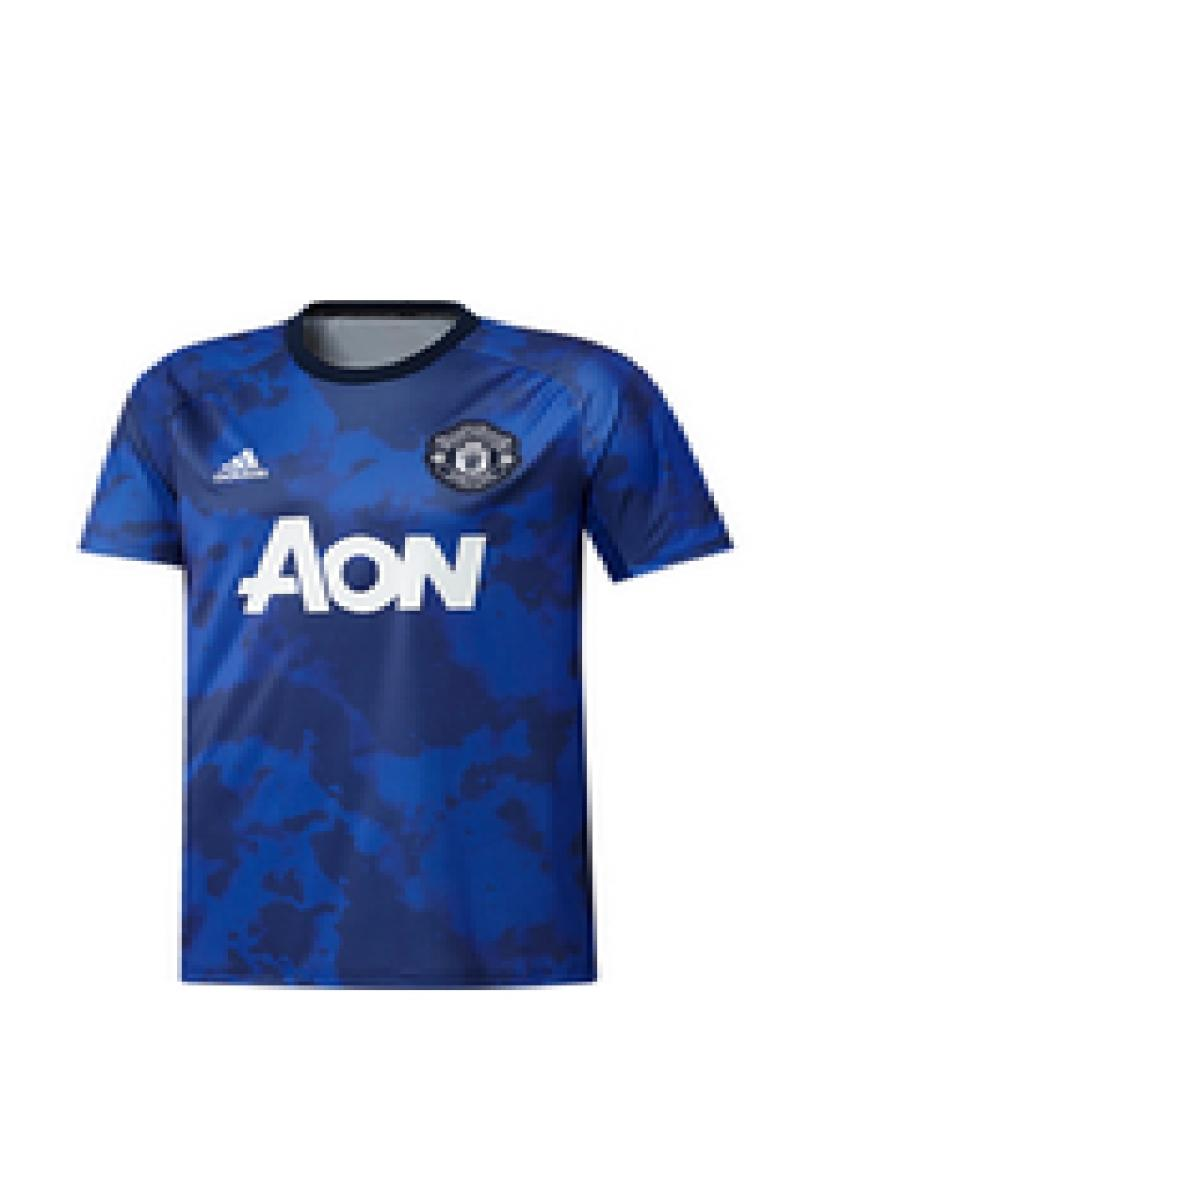 Camiseta Masculina Adidas Dx9089 Pret Jogo Man United i Royal